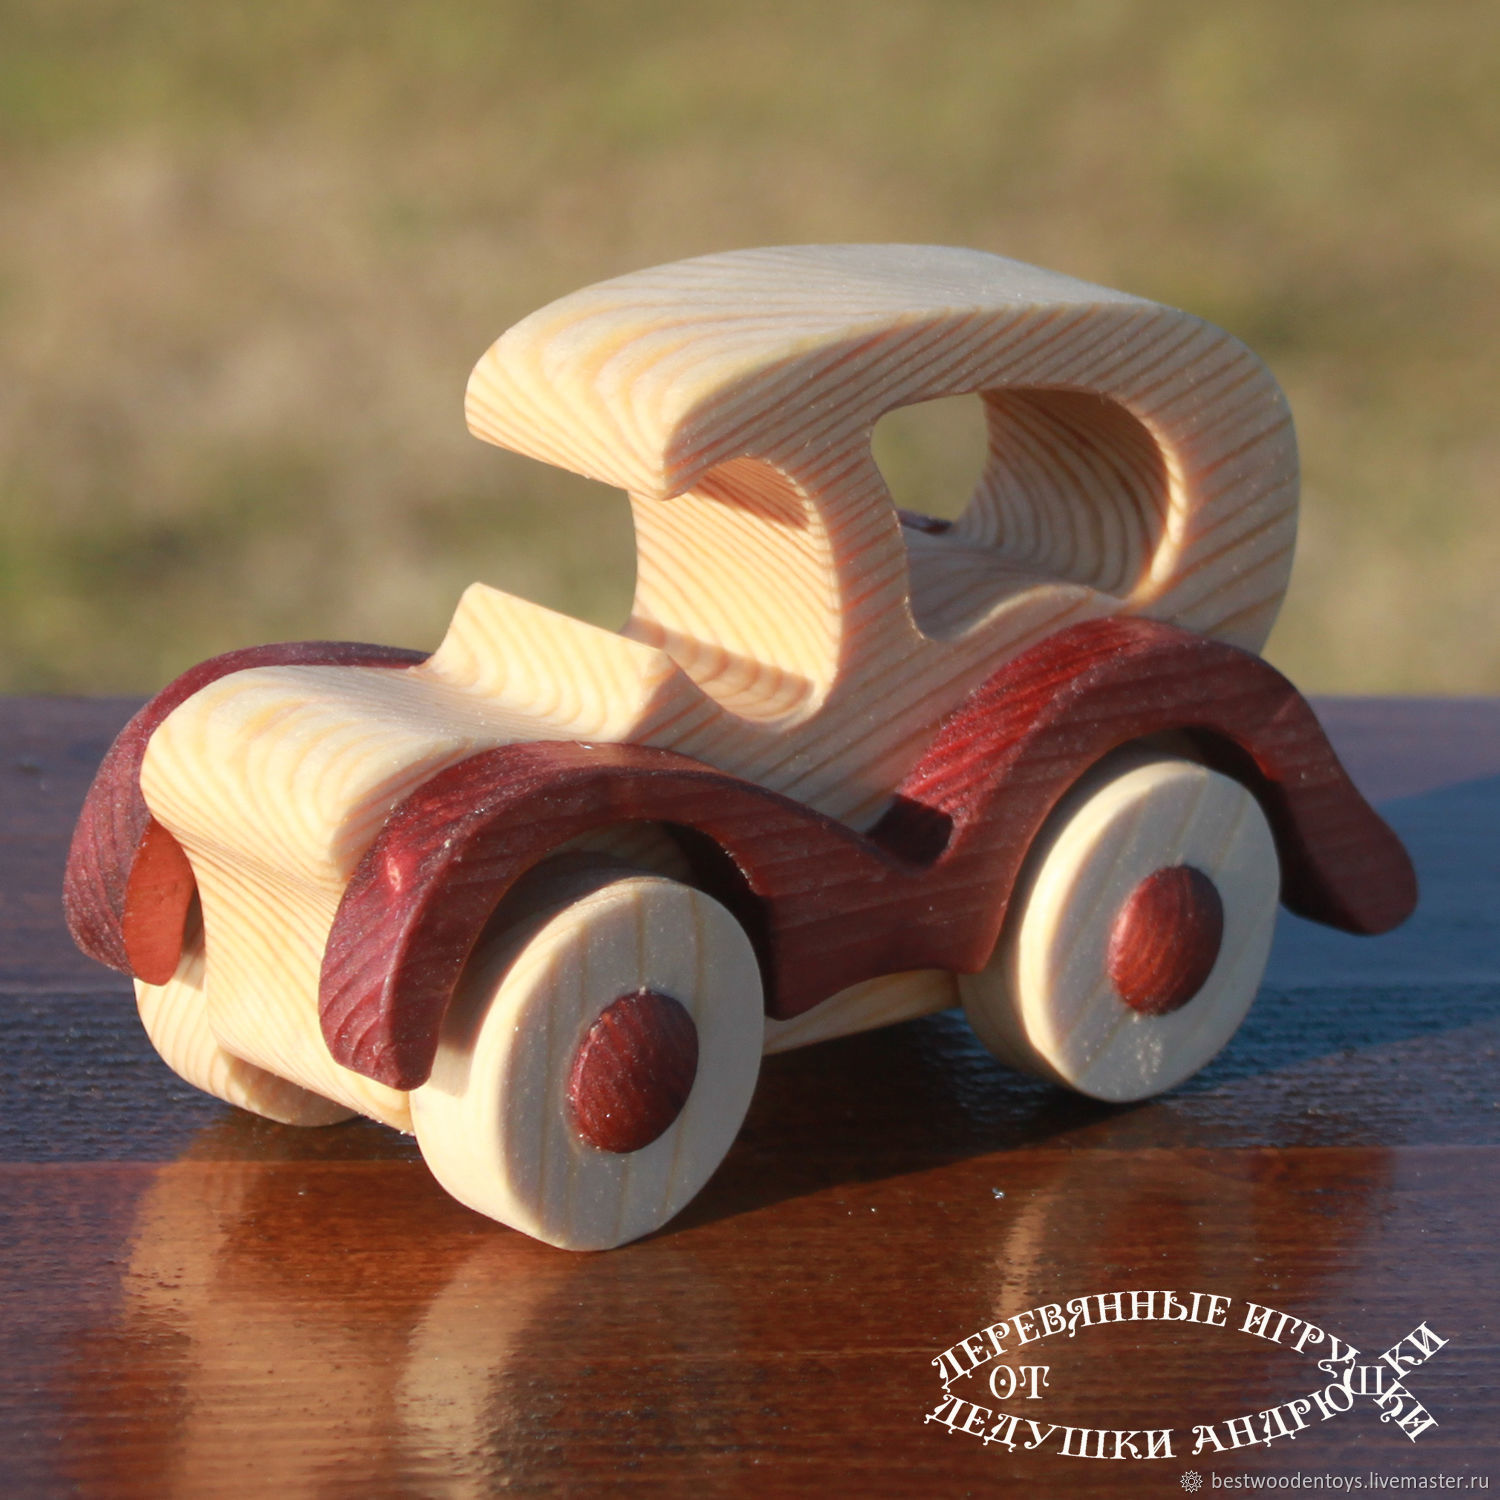 Waldorf toy. Machine wood. Machine - Cadence. Retro garage. Machines can be easily retro. Wooden toys from Santa Andrewski.